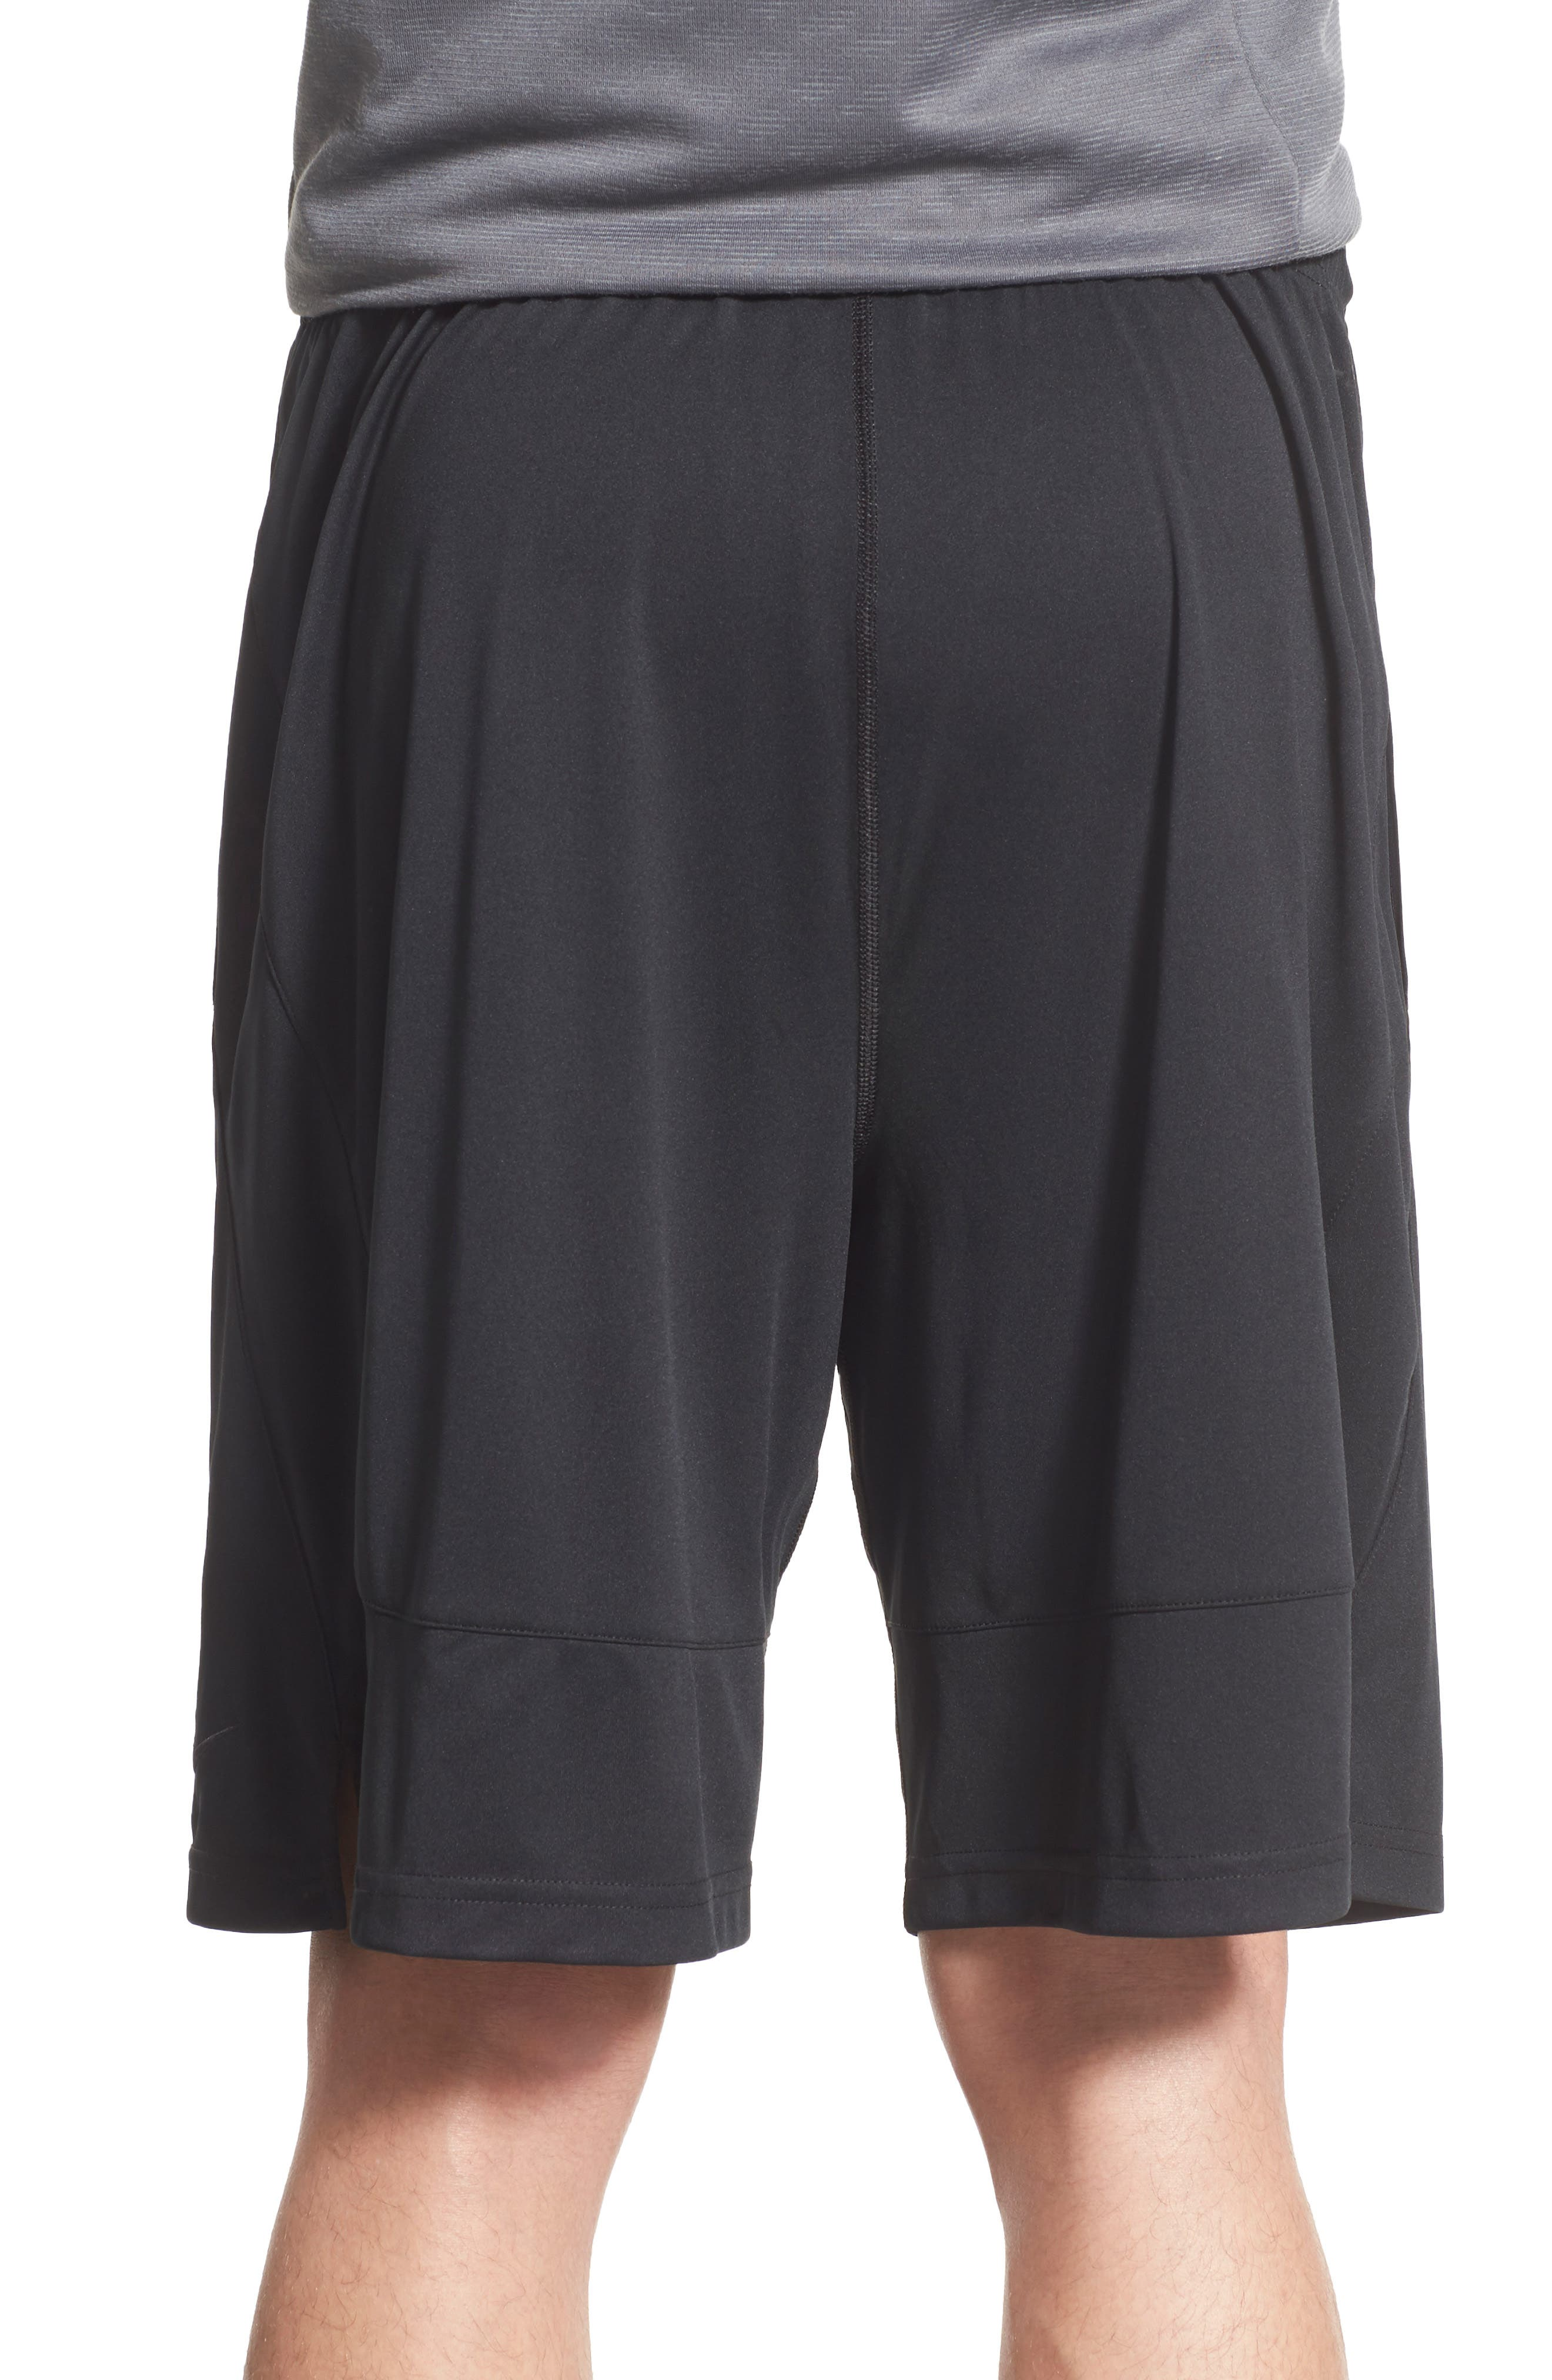 Fly Athletic Shorts,                             Alternate thumbnail 2, color,                             010